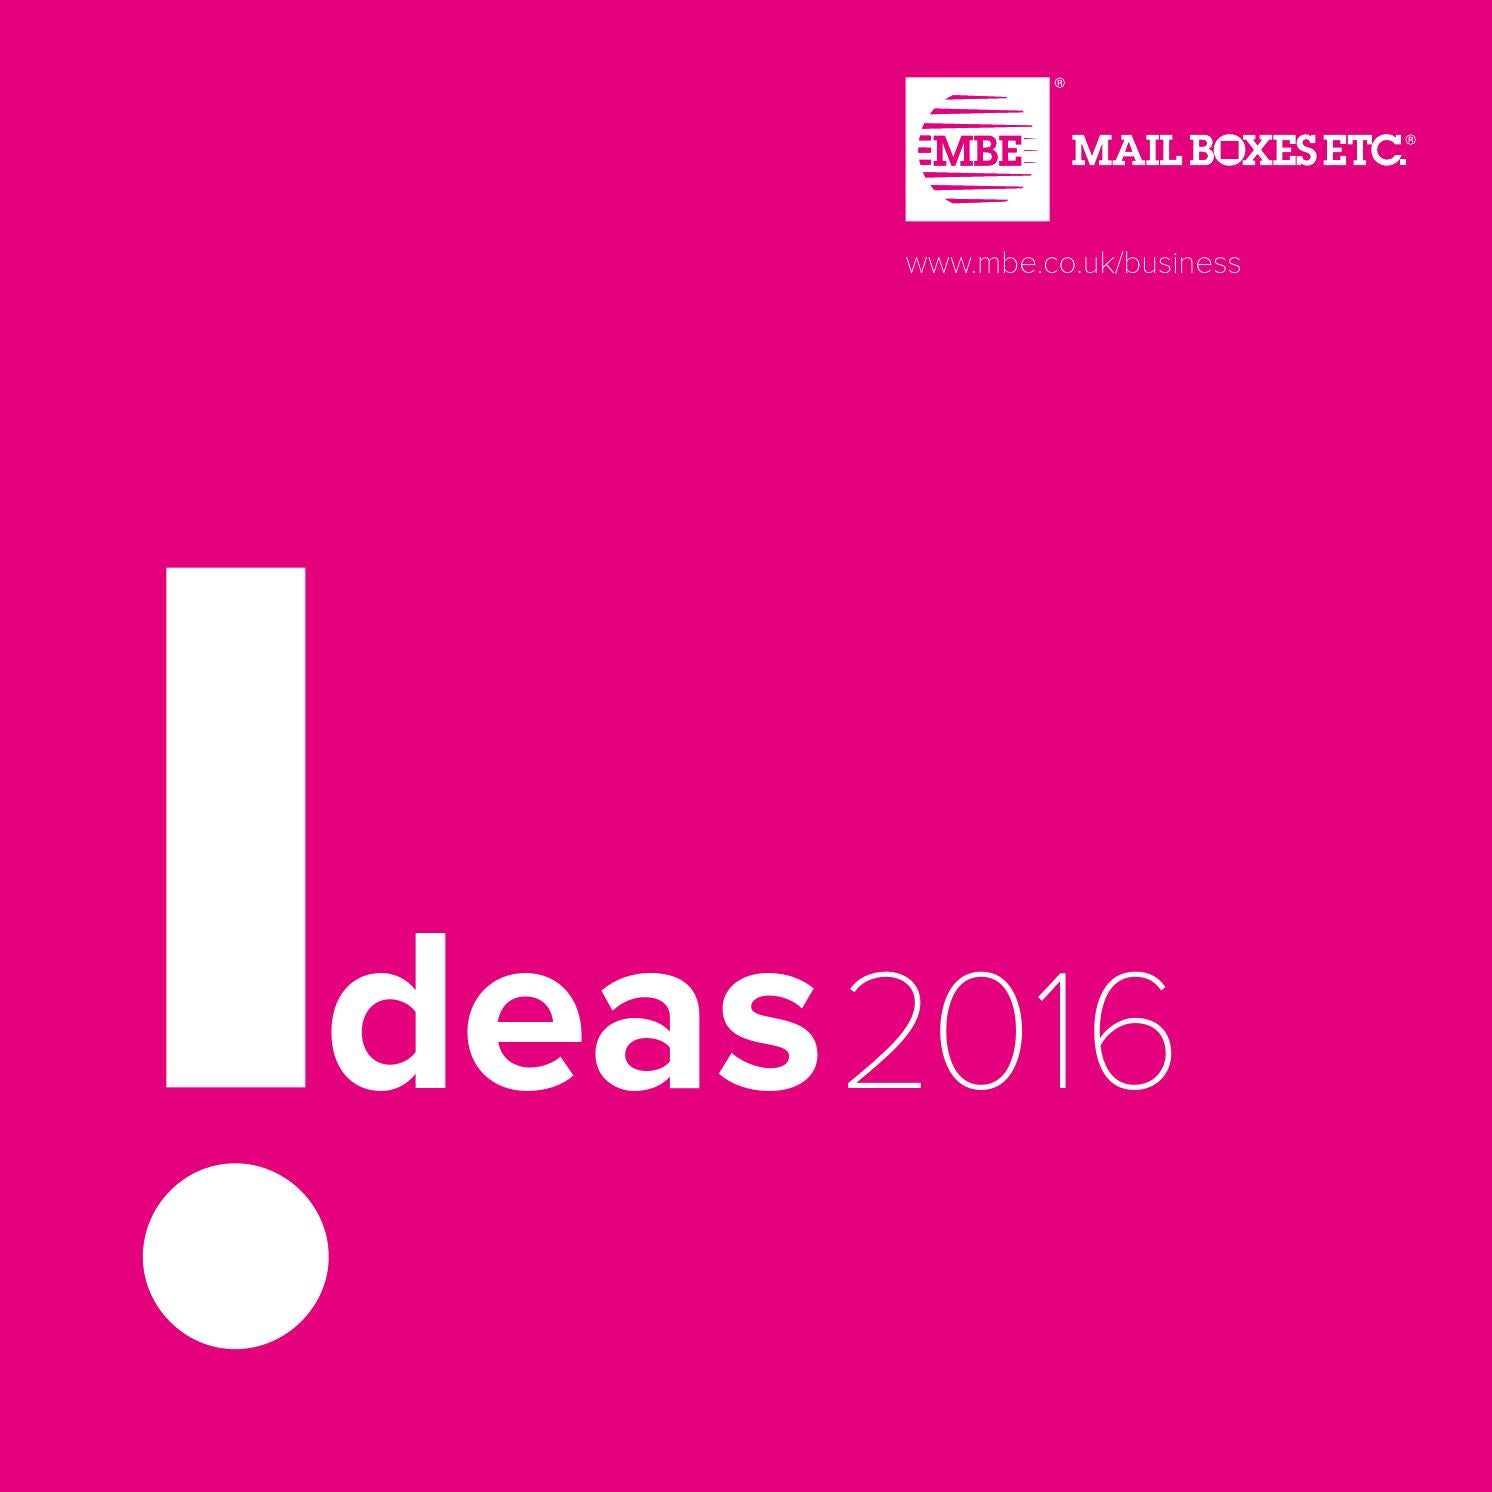 Mail Boxes Etc Ideas catalogue 2016 by Mail Boxes Etc UK & Ireland